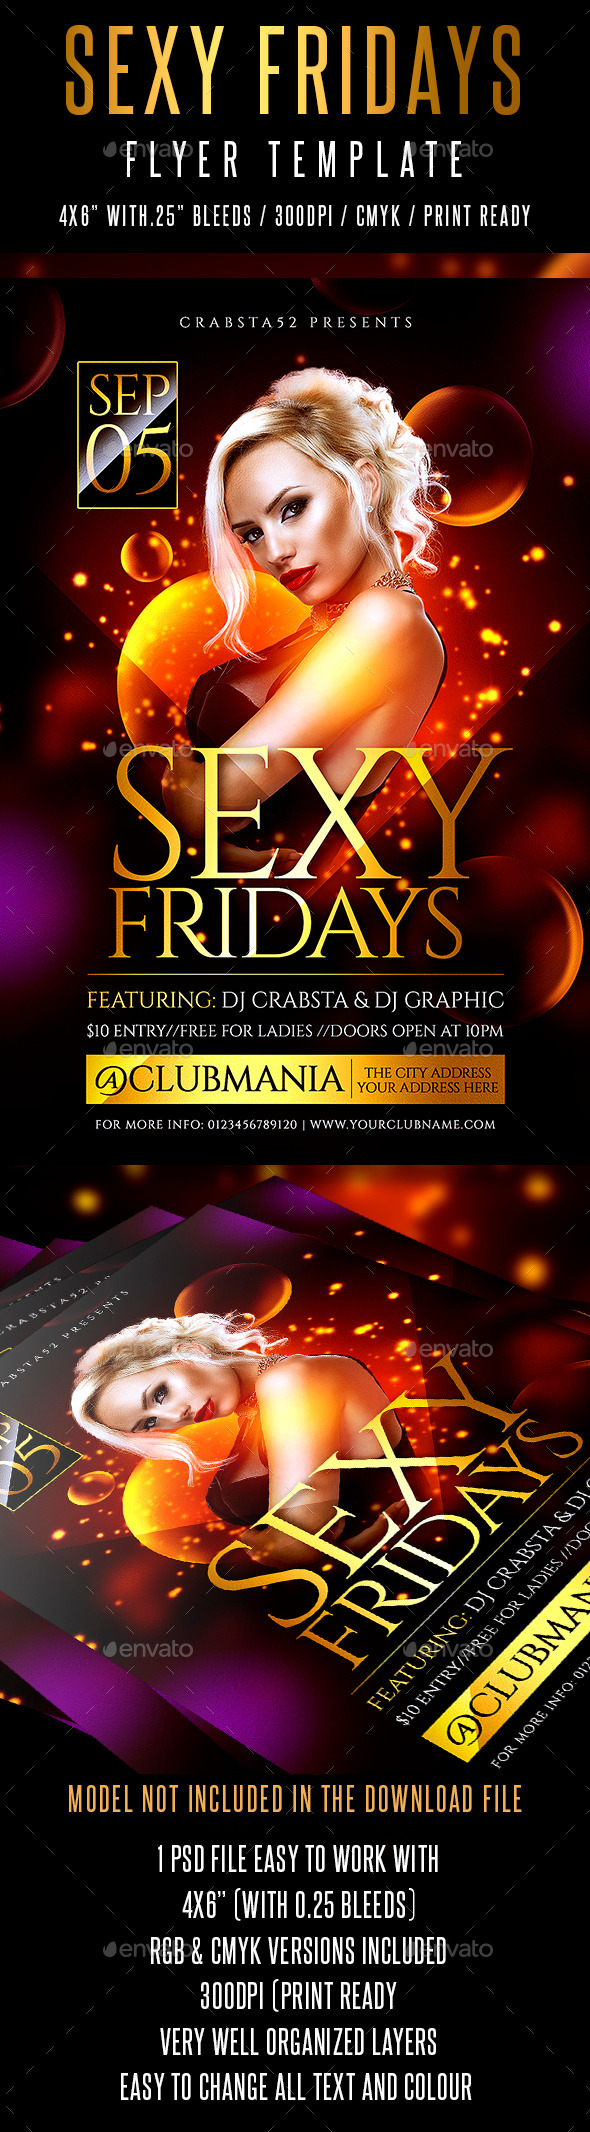 Sexy Fridays Flyer Template - Clubs & Parties Events